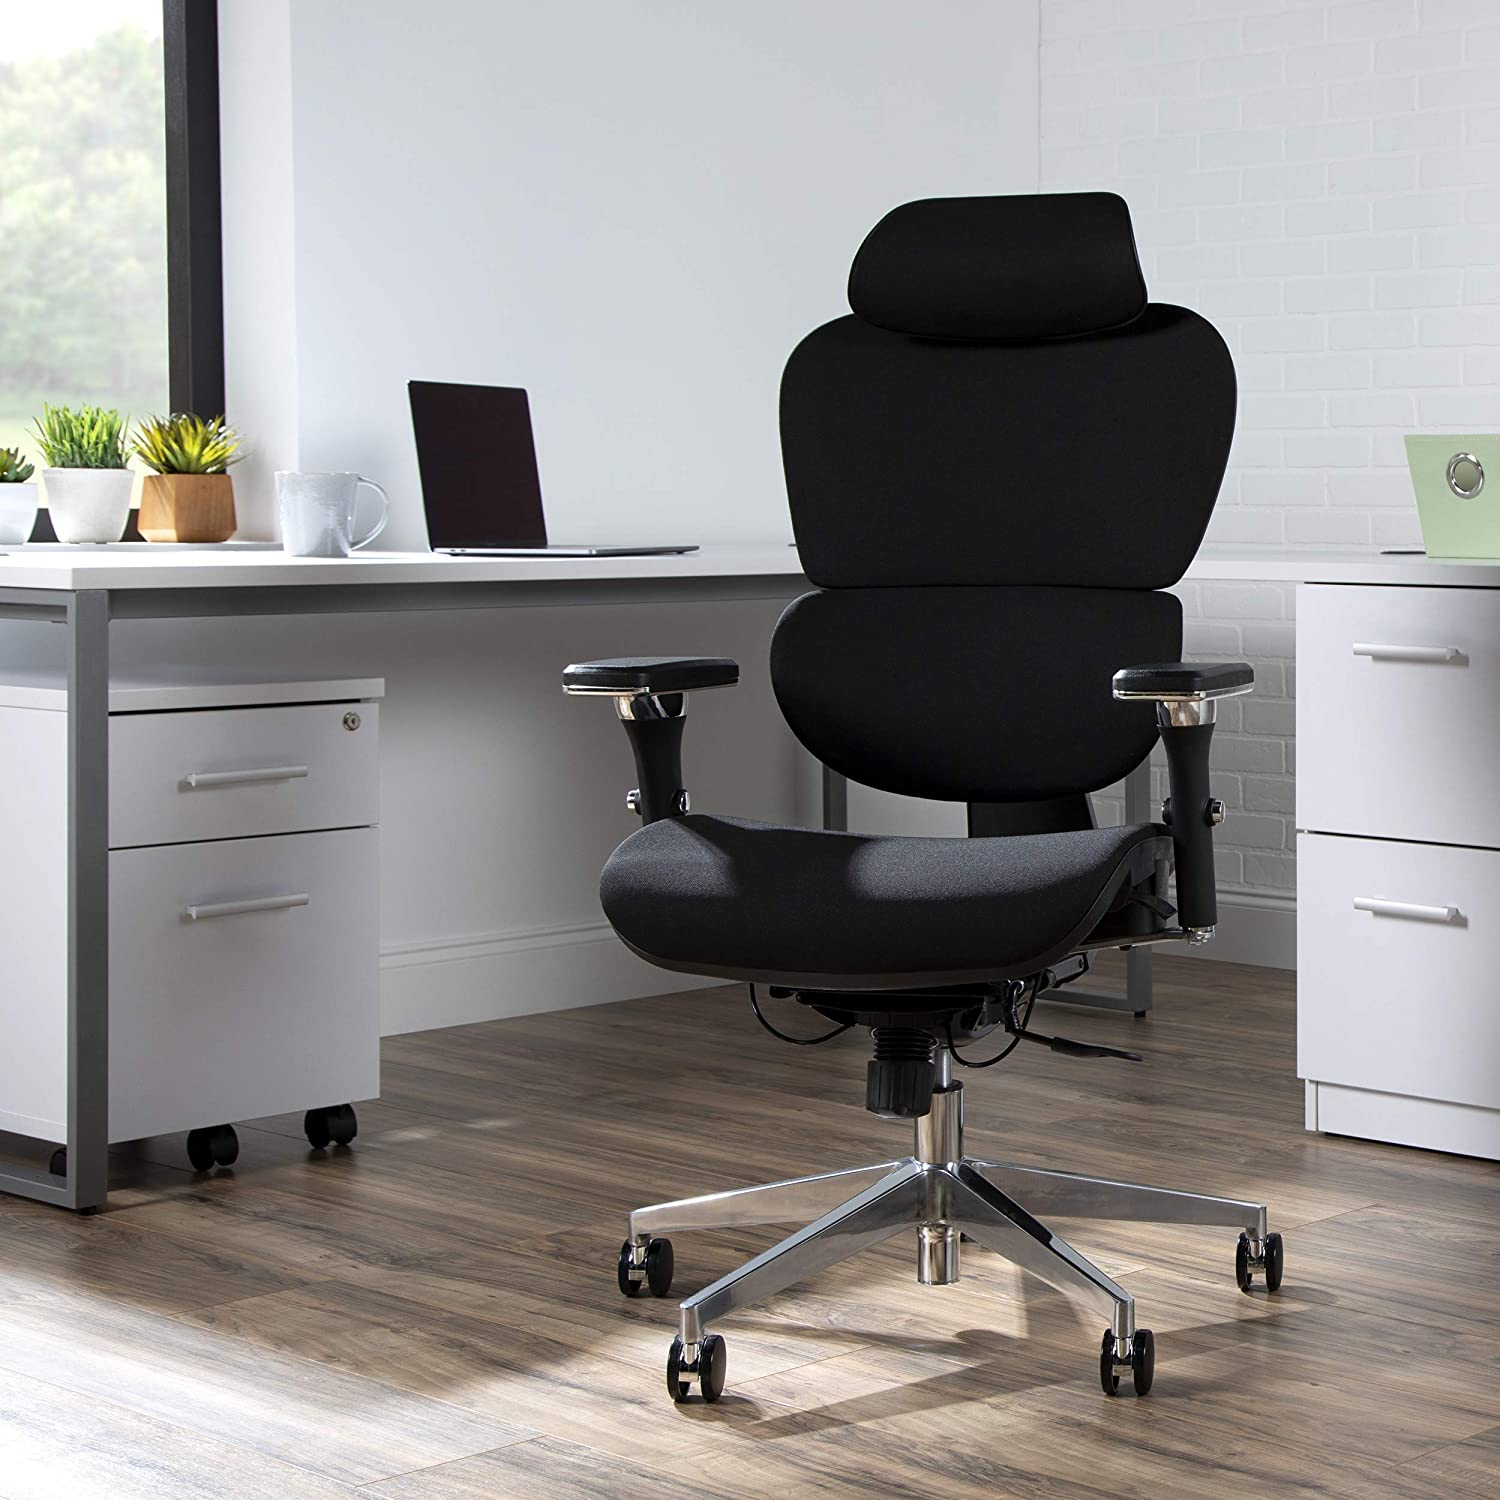 OFM Core Collection Ergo Fabric Upholstered Office Chair with Optional Headrest, Lumbar Support, in Black